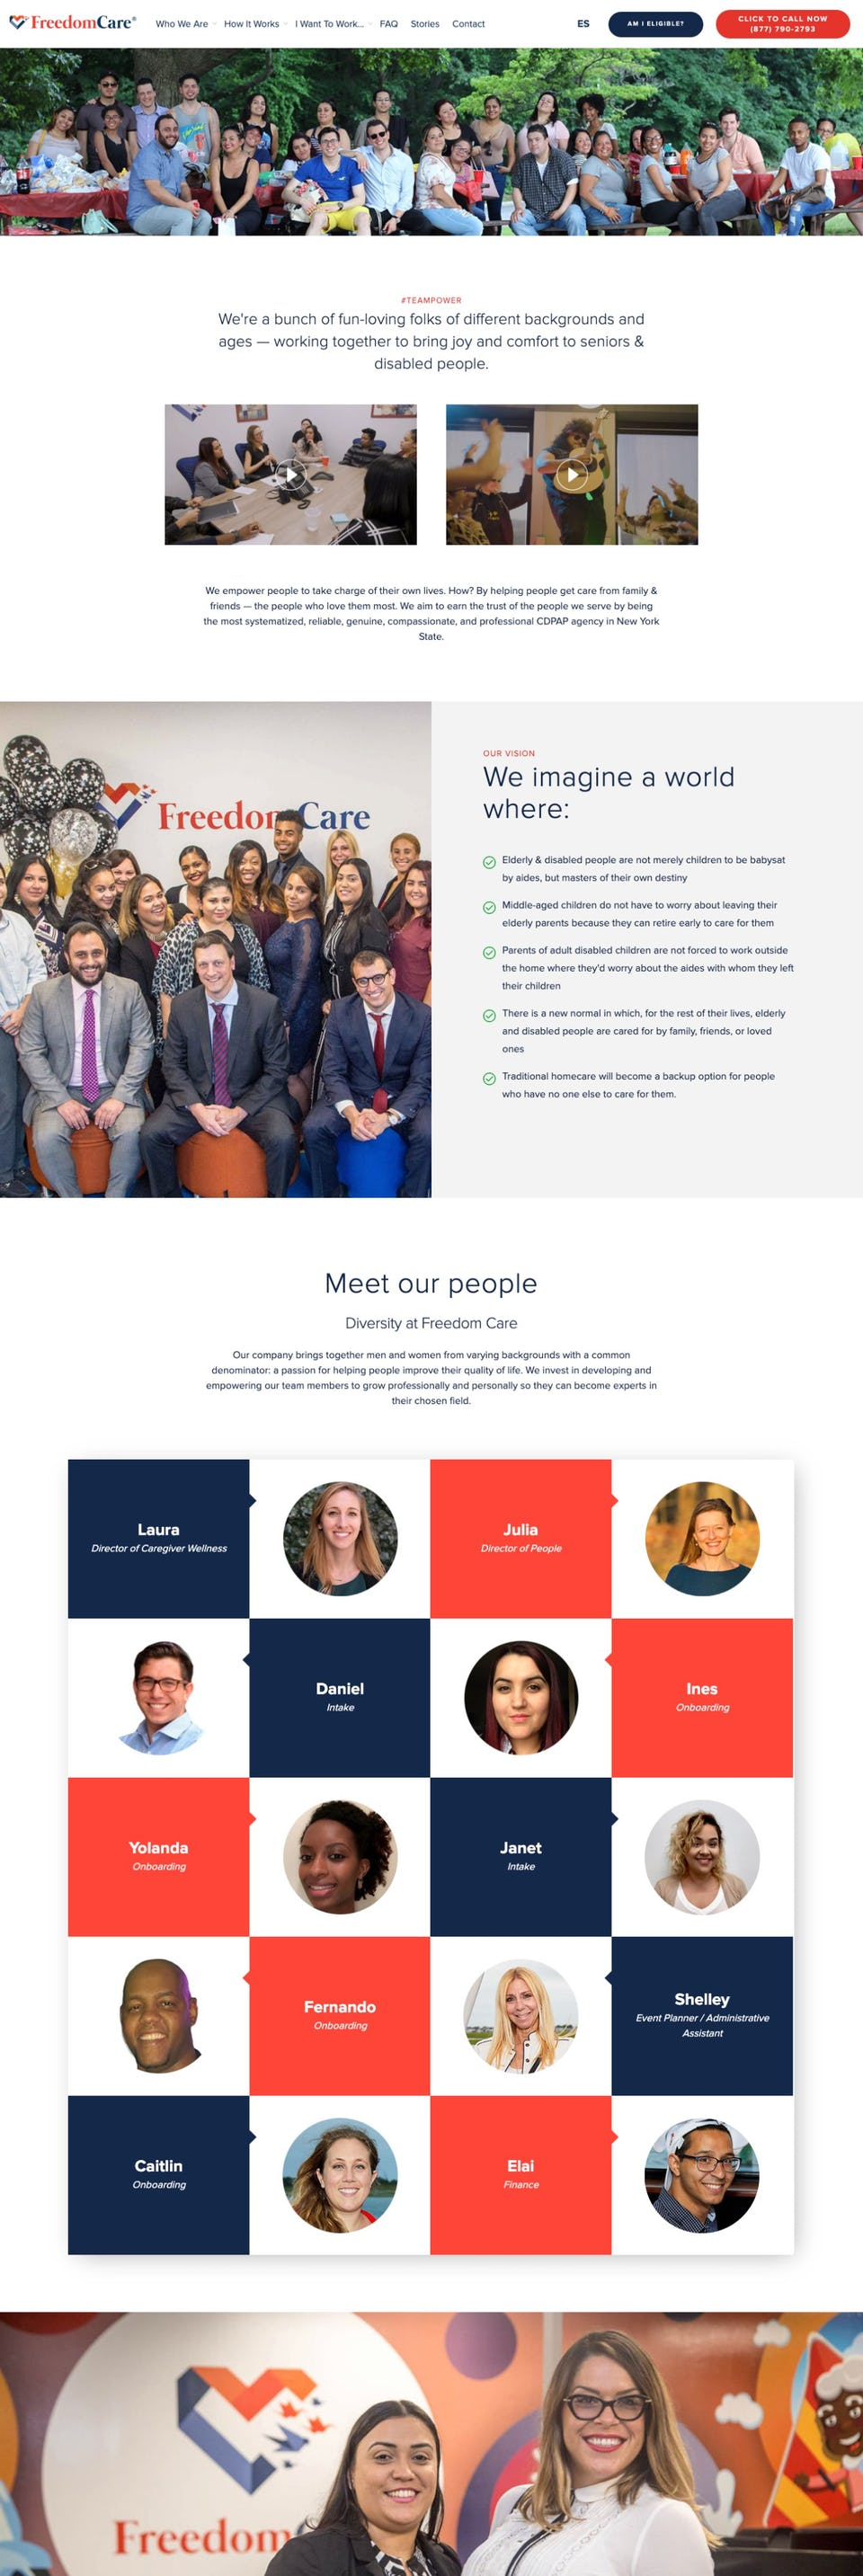 webflow project 5 - FreedomCare New York